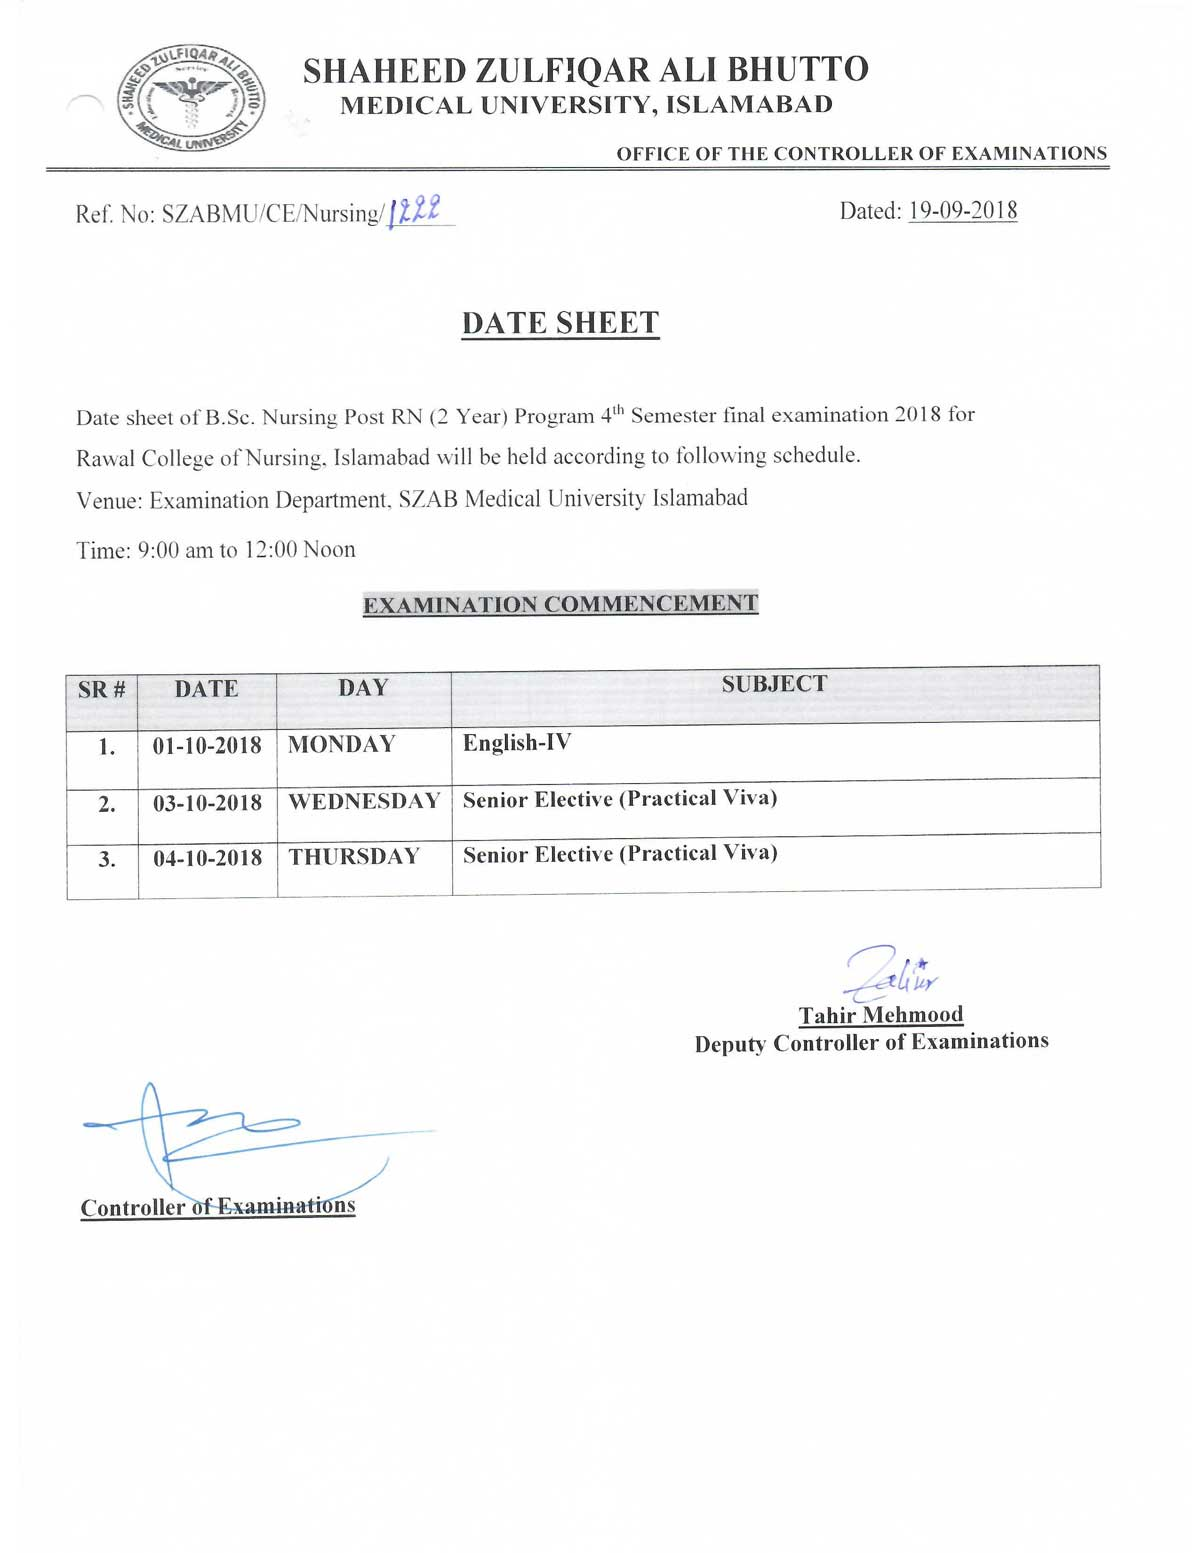 Date Sheet of B.Sc Nursing Post RN 4th Semester, RCN, Islamabad